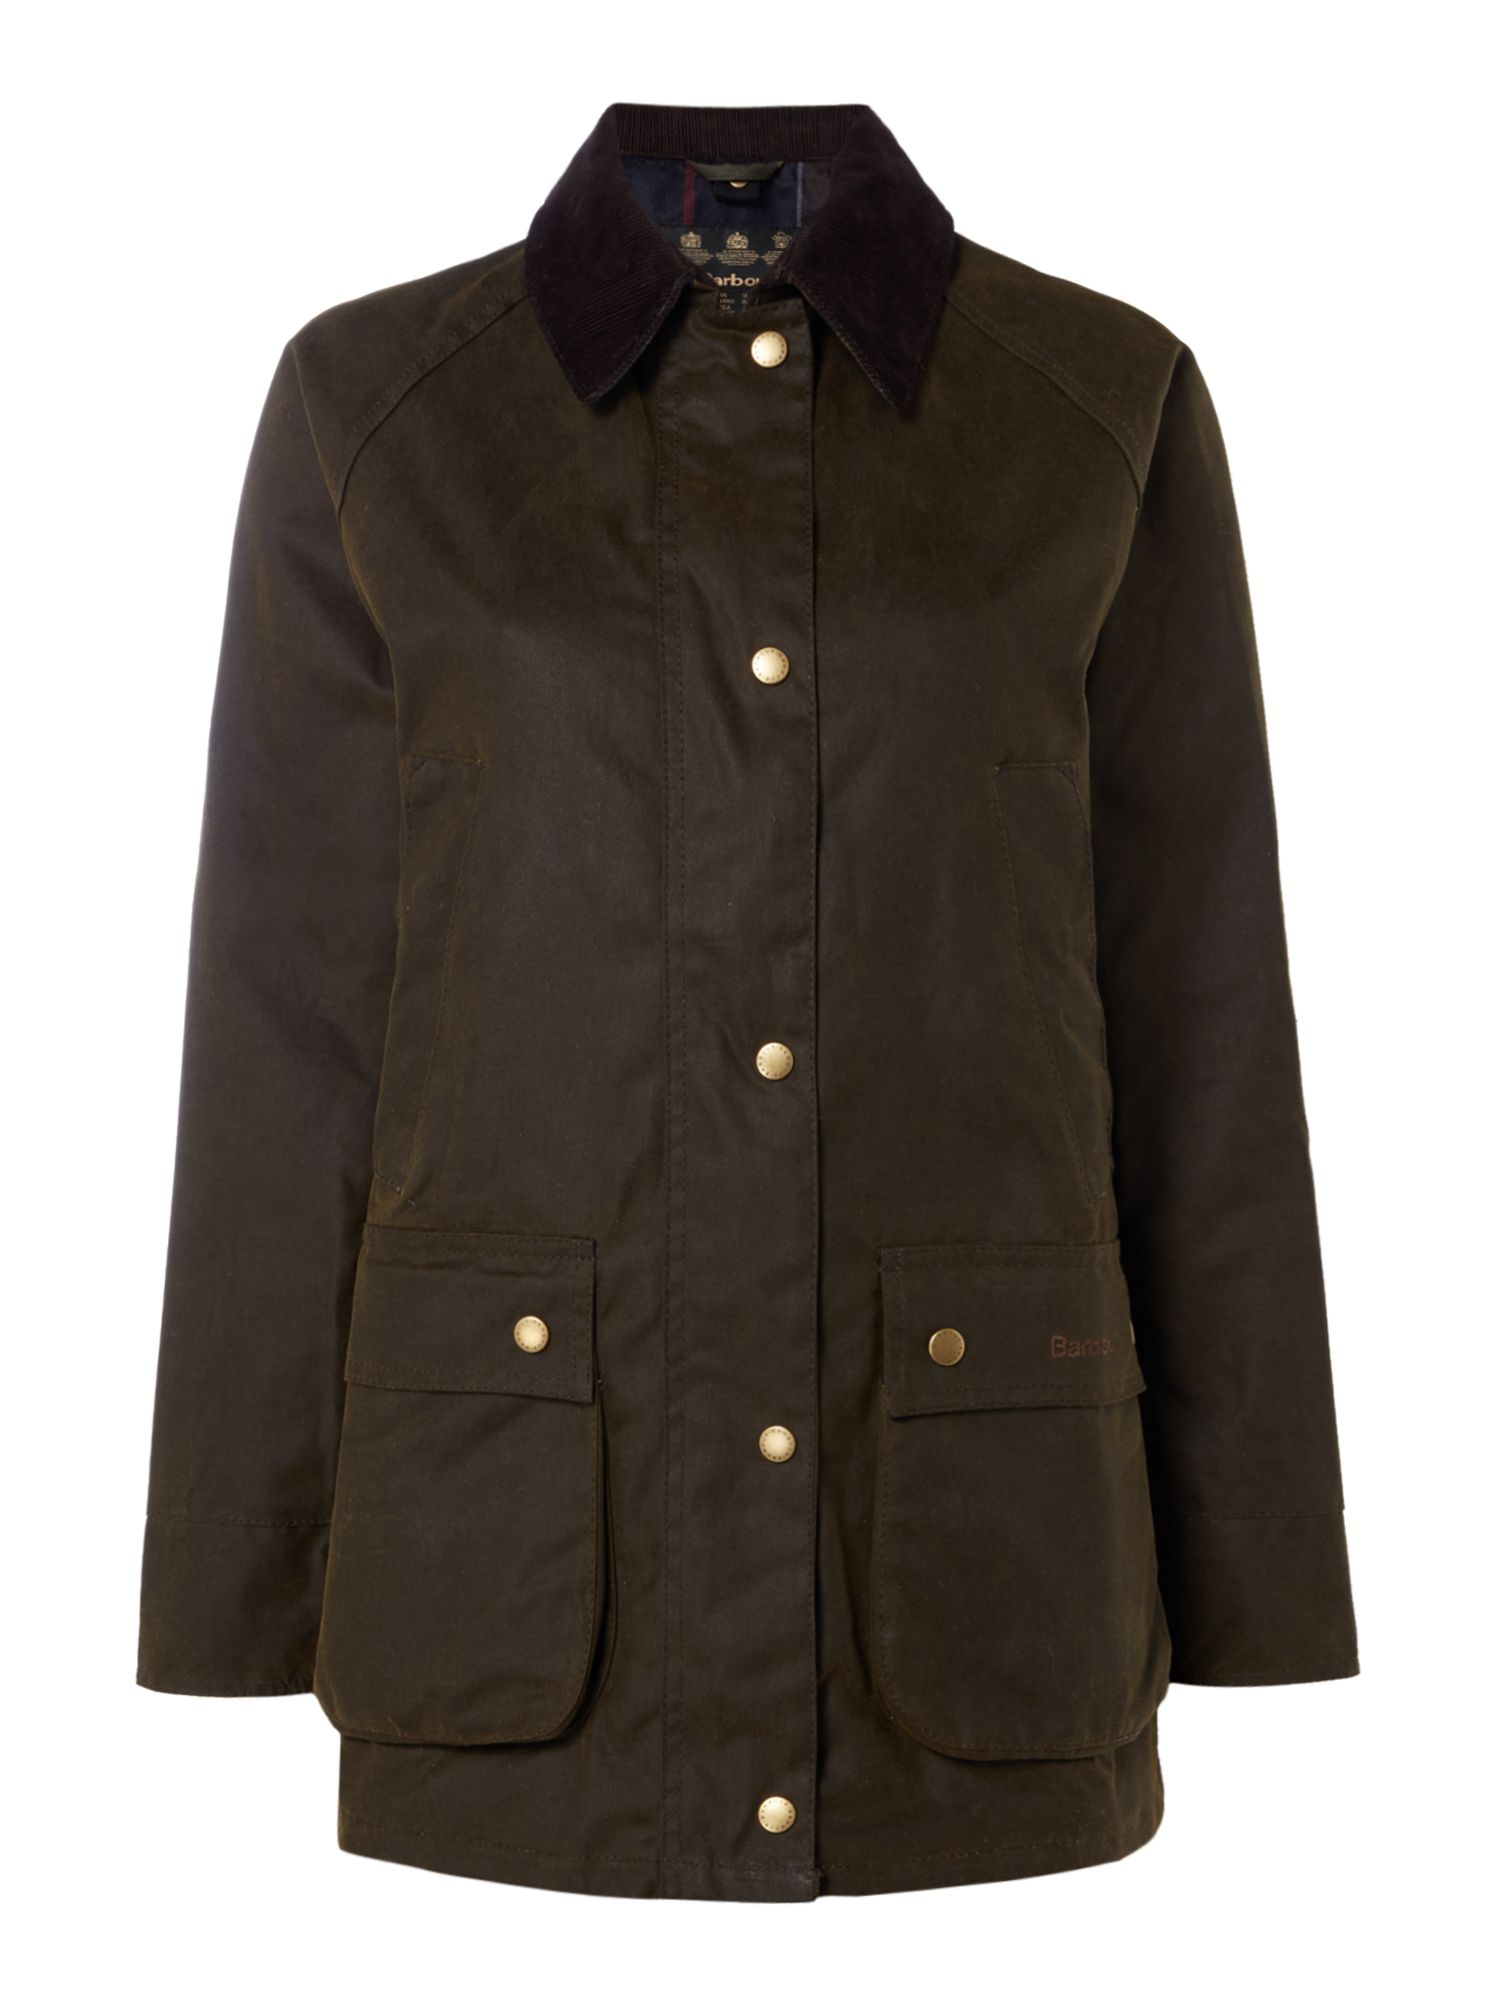 Barbour Acorn Wax Jacket With Tartan Lining, Olive